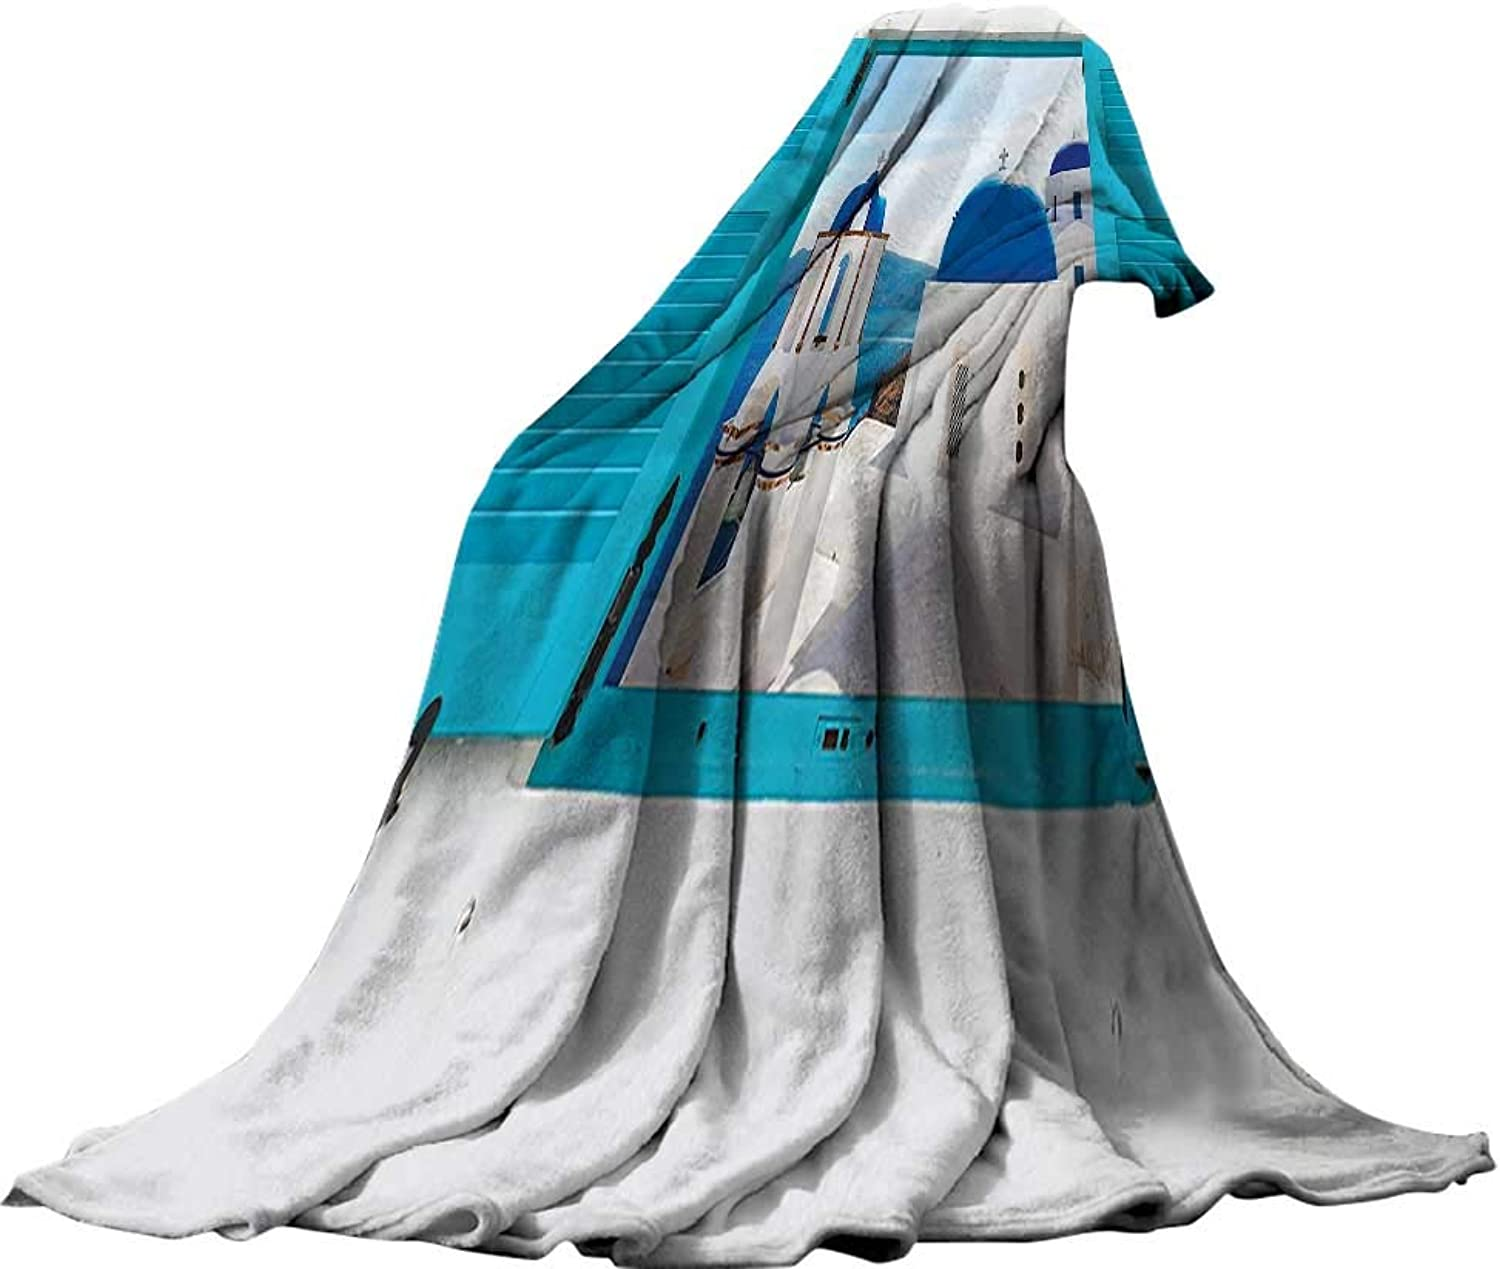 QINYAN-Home Super Soft Lightweight Blanket (60 x60 ) Summer Quilt Comforter House Decor Window with View of Classical Church with bluee Domes Oia Santorini Greece.